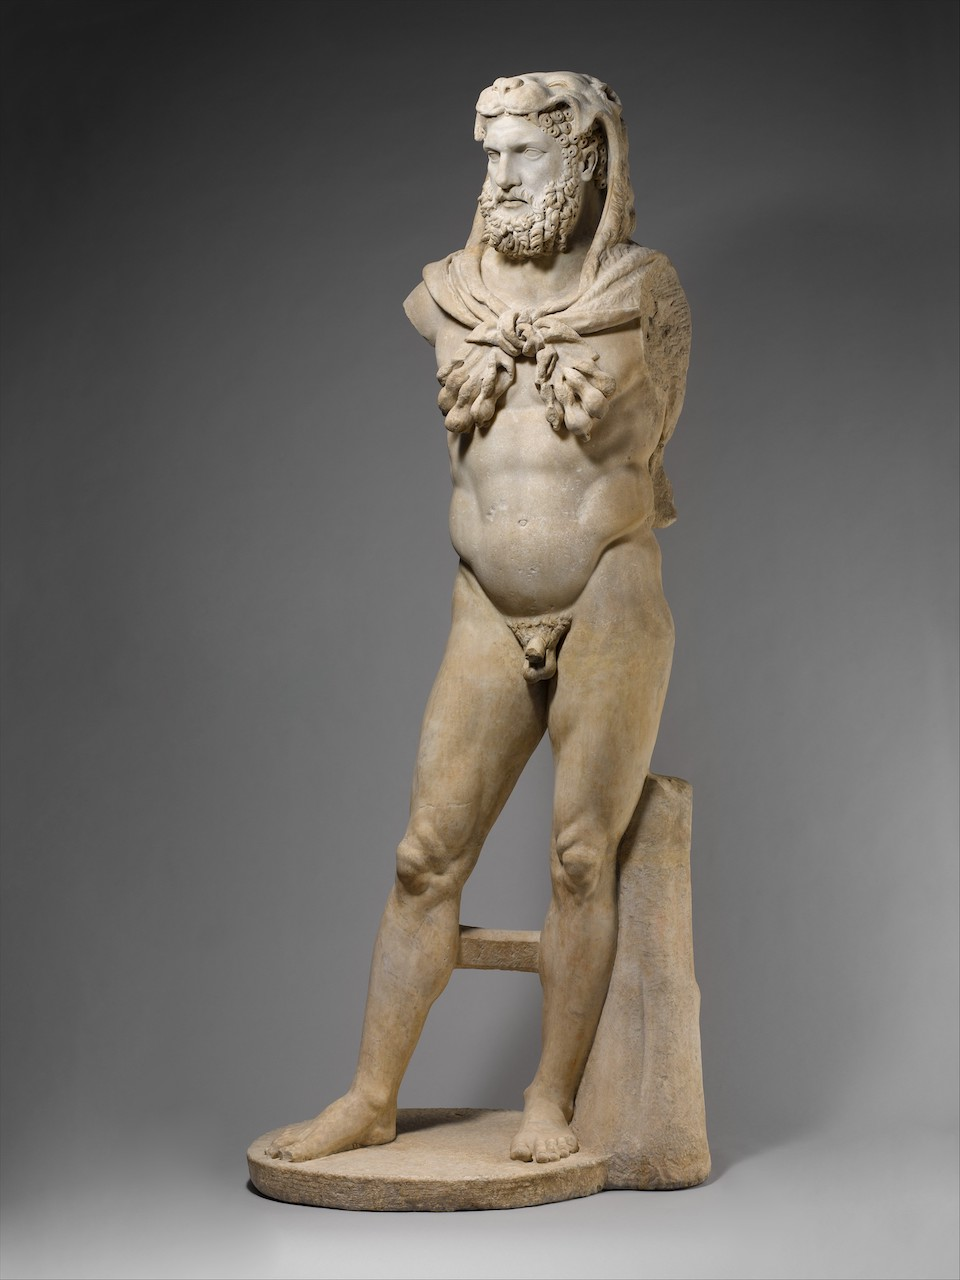 Marble statue of a bearded Hercules, 1st century CE, with restorations dating from the 17th century.